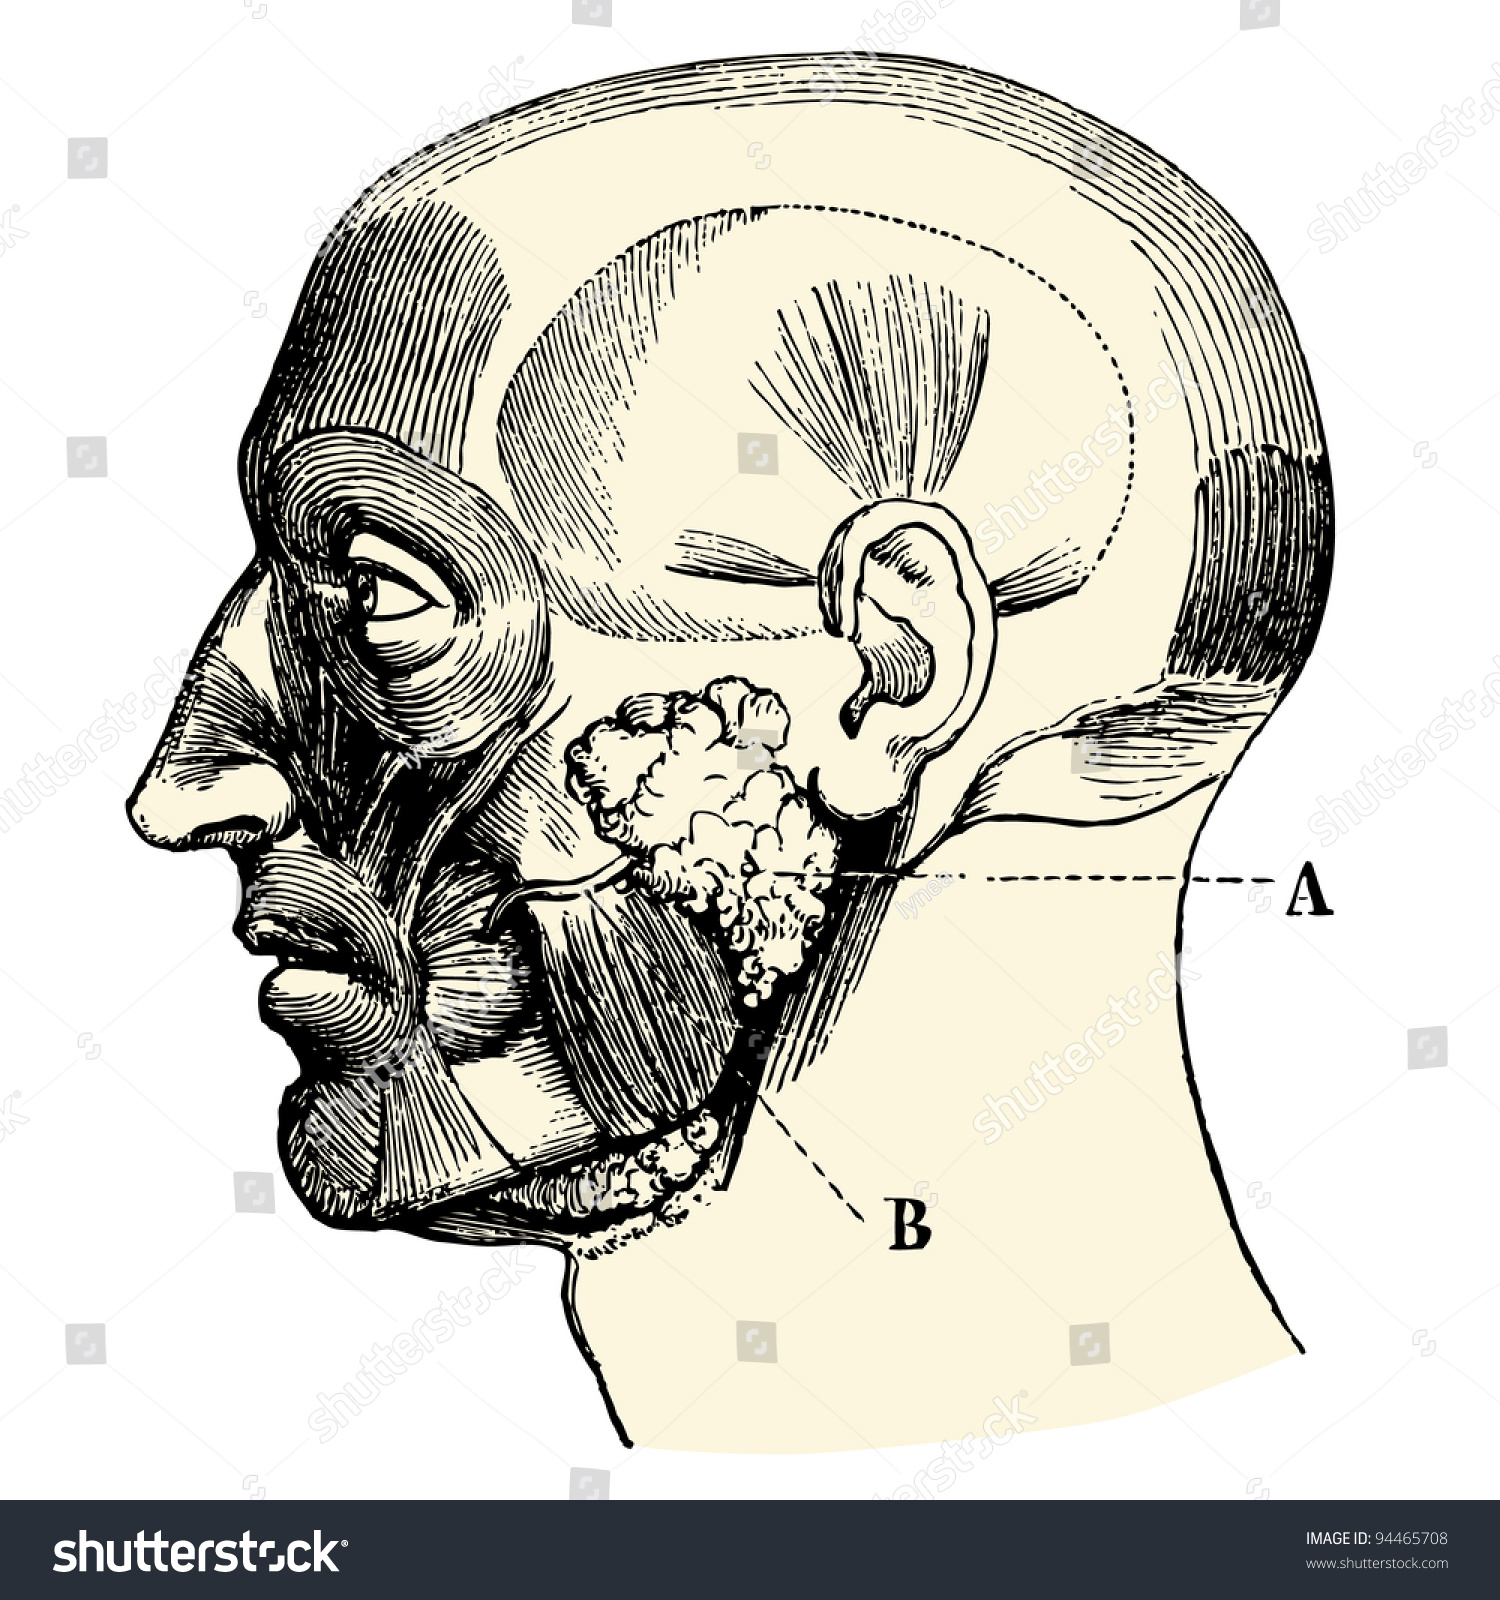 Human Anatomie Salivary Glands Vintage Engraved Stock Vector ...